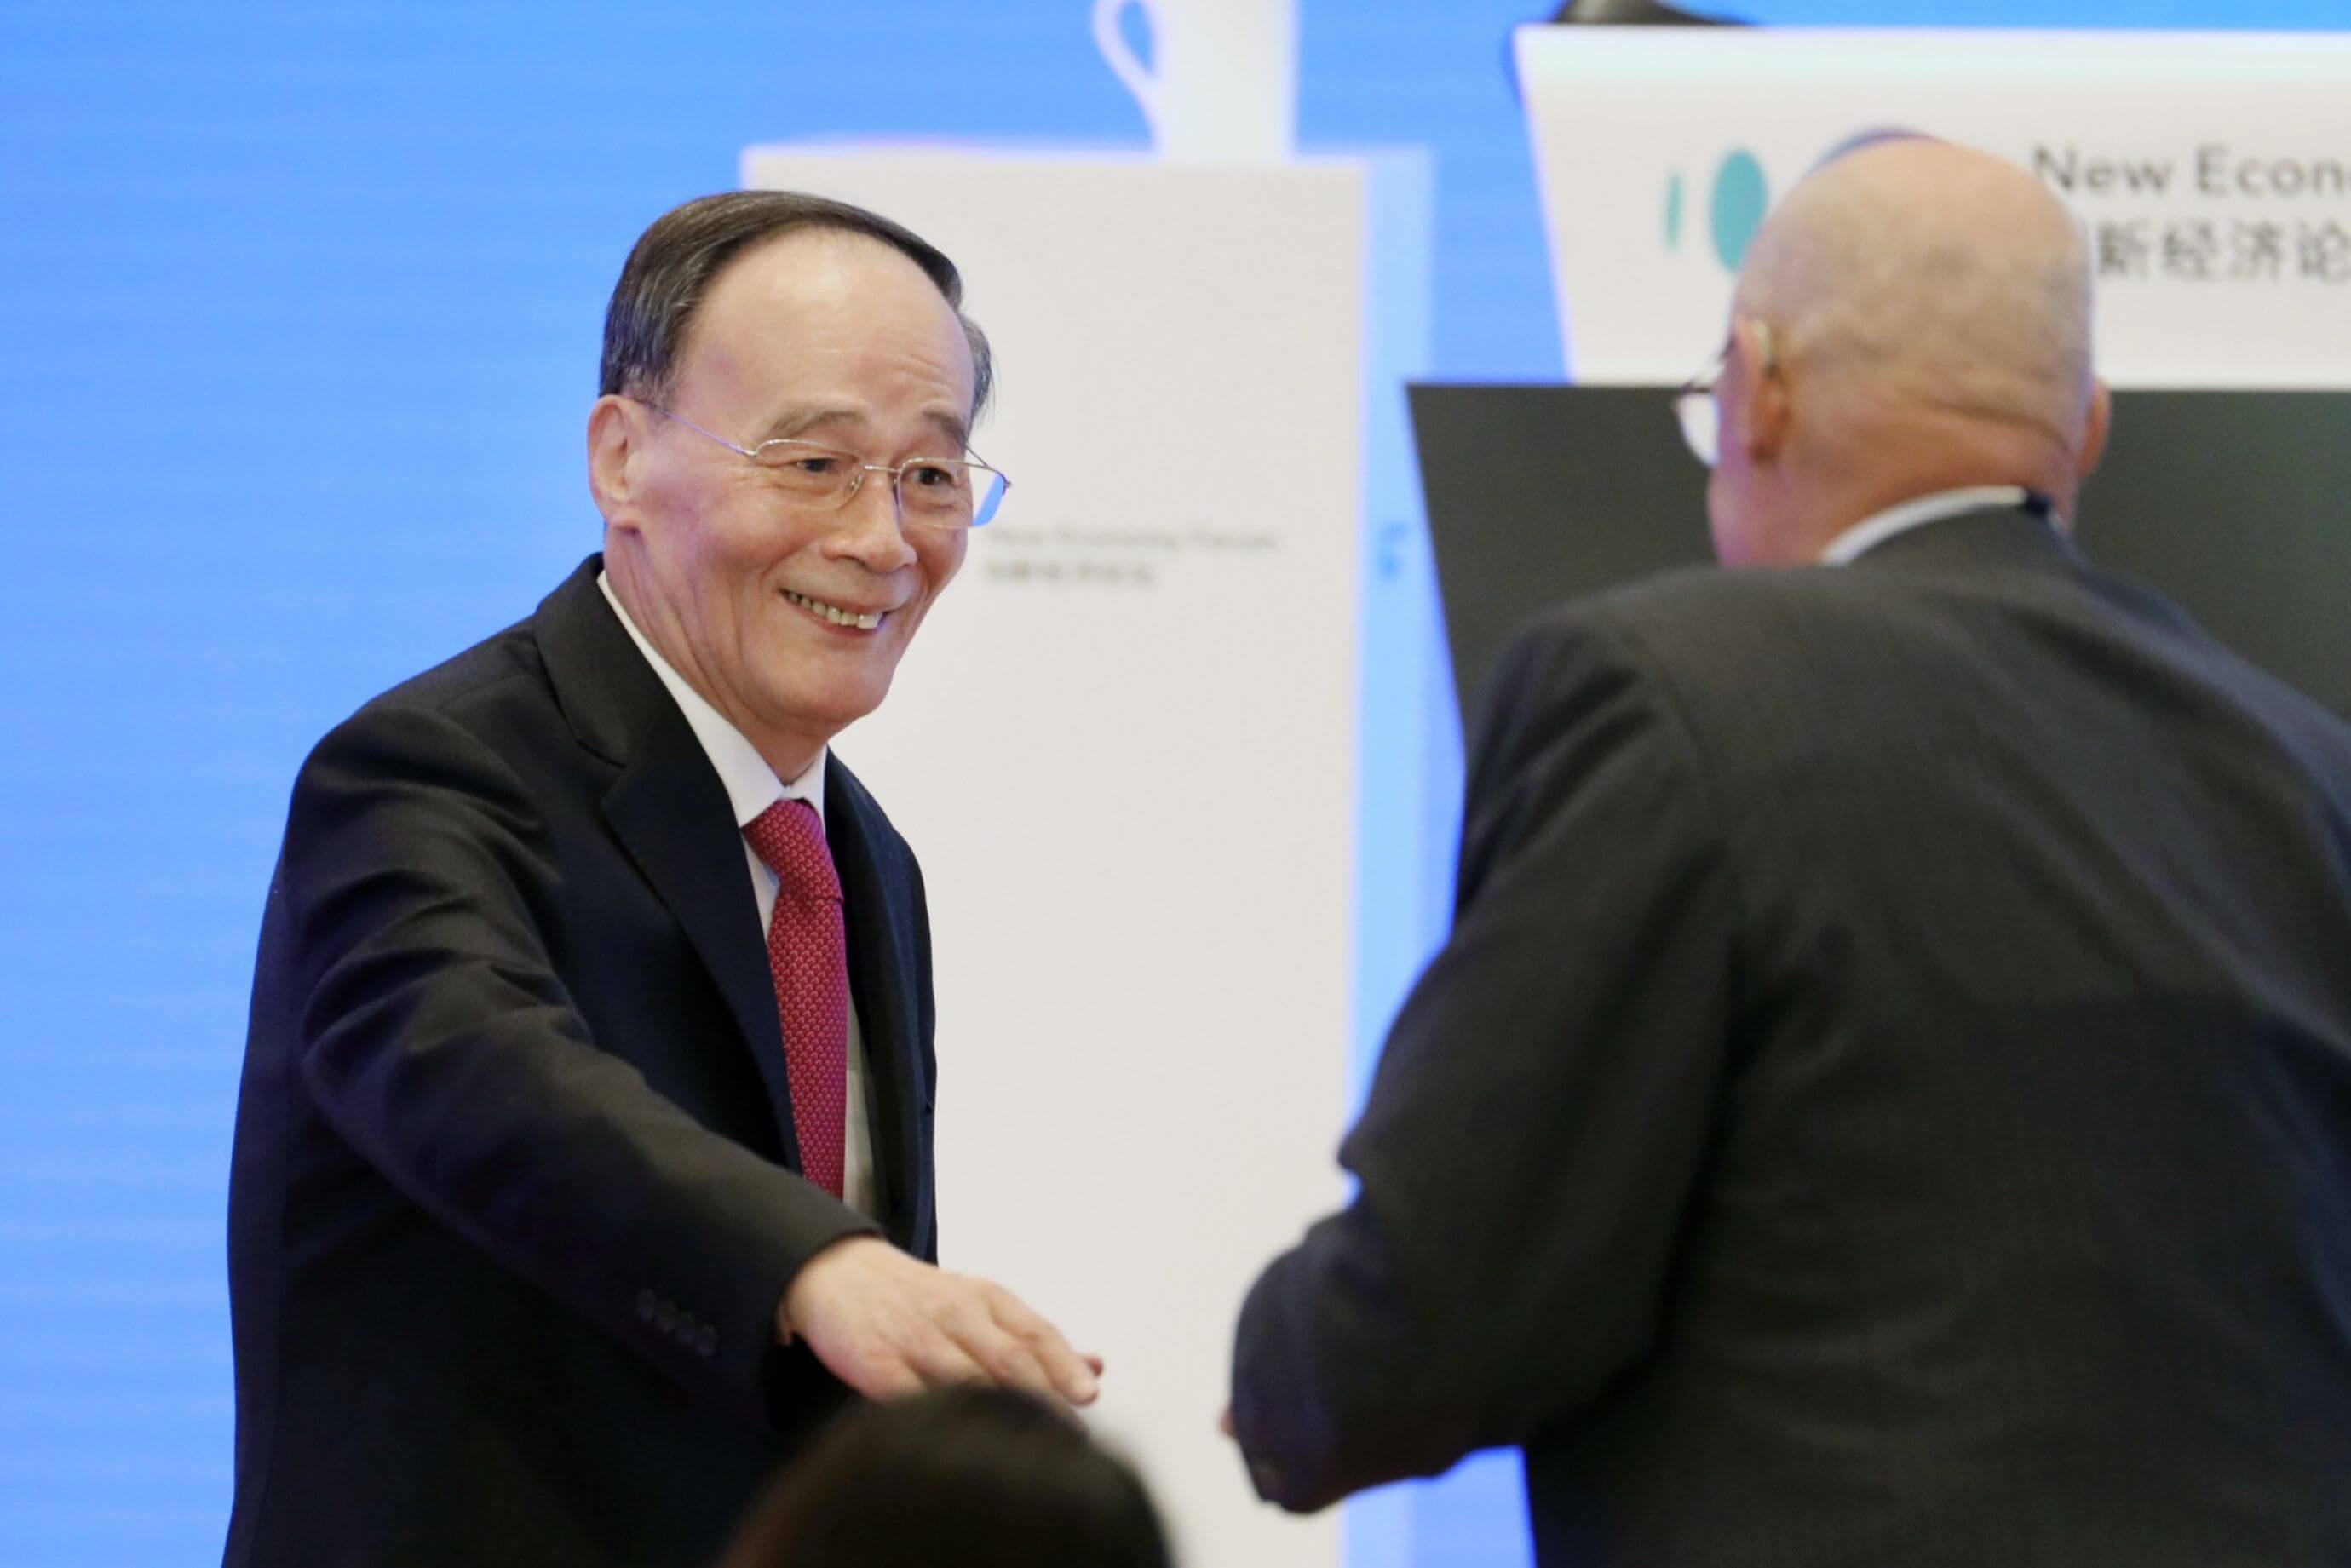 Wang Qishan delivers keynote address during the opening ceremony of the 2019 New Economy Forum